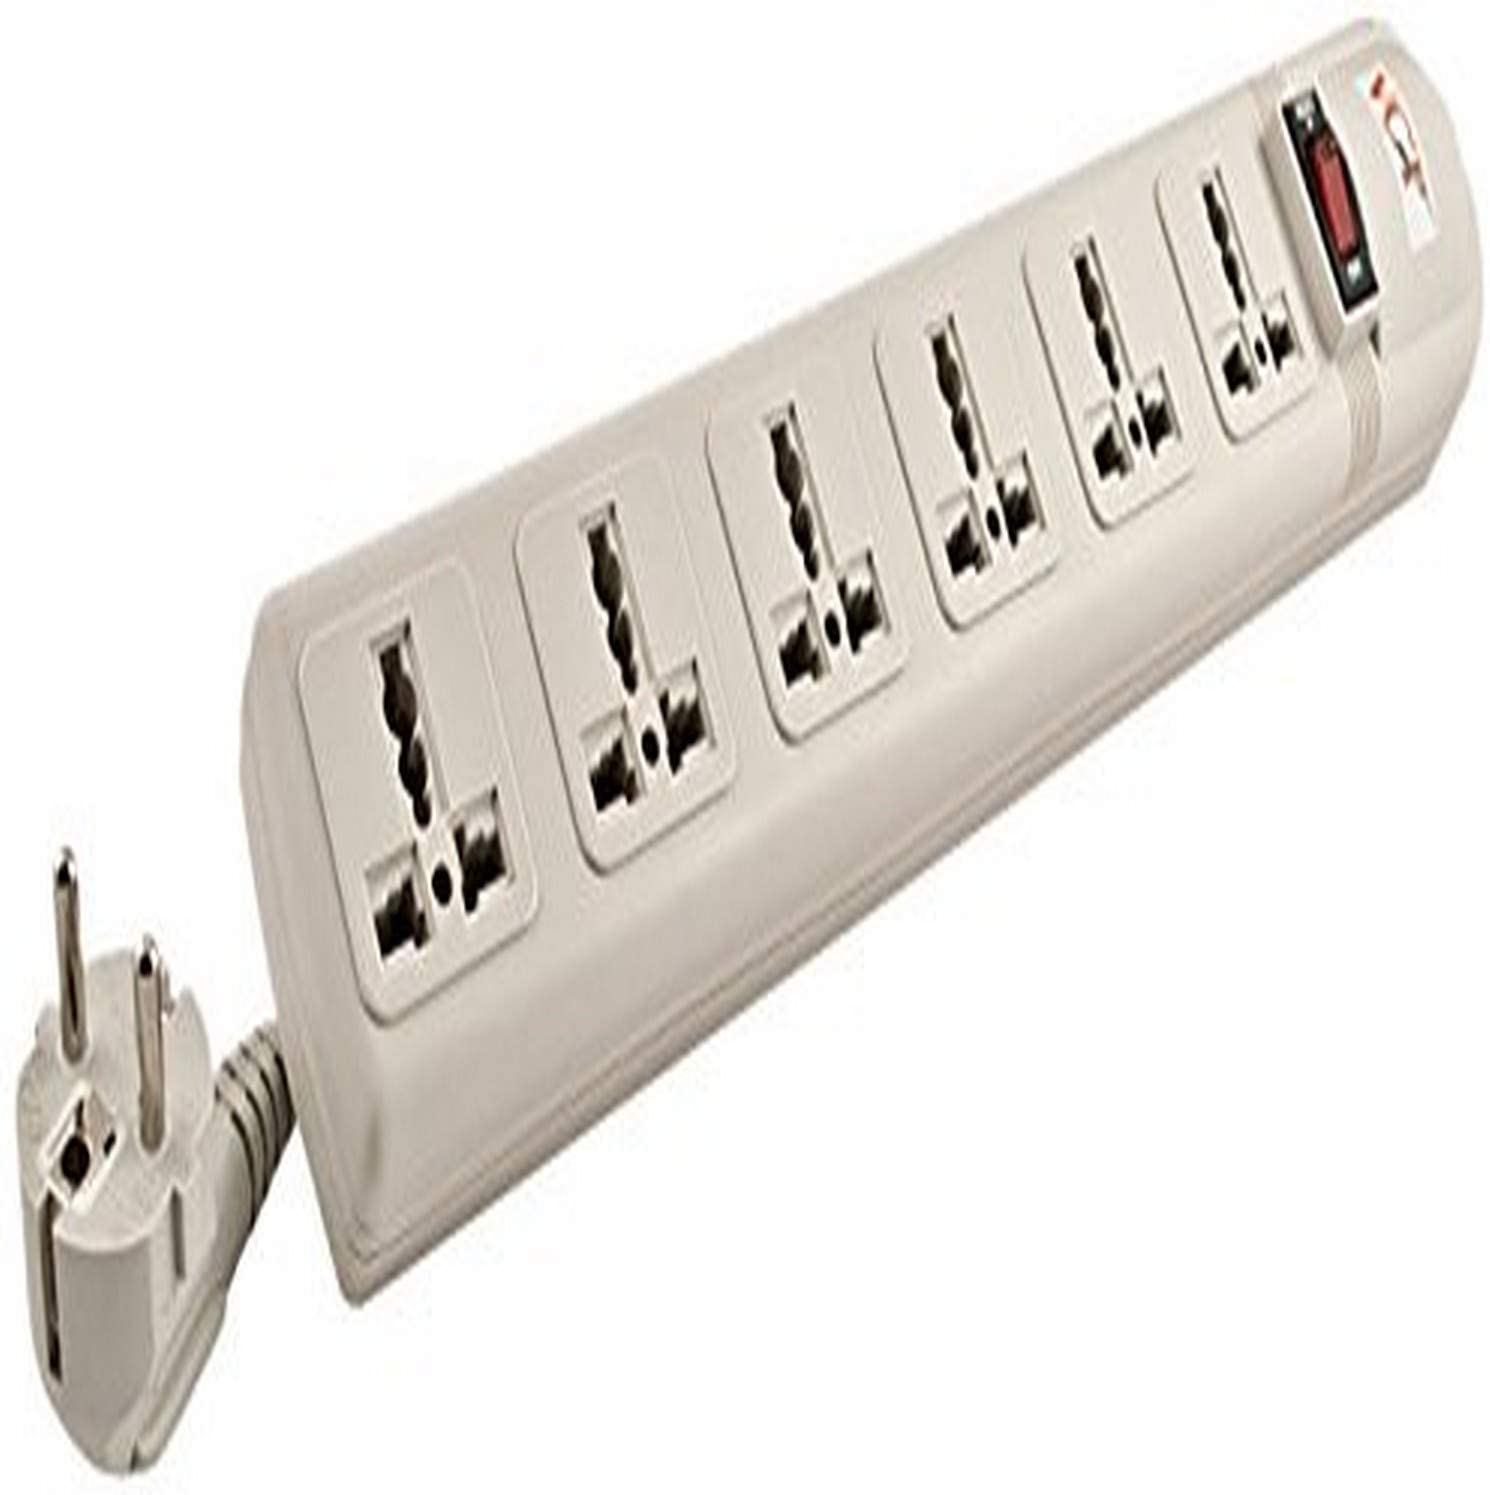 VCT - 220V/240V AC 13A Universal Surge Protector / Power Strip with 6 Universal Outlets. 50Hz/60Hz - 450 Joules. Max. 4000 Watt Capacity - Heavy Duty European Cord